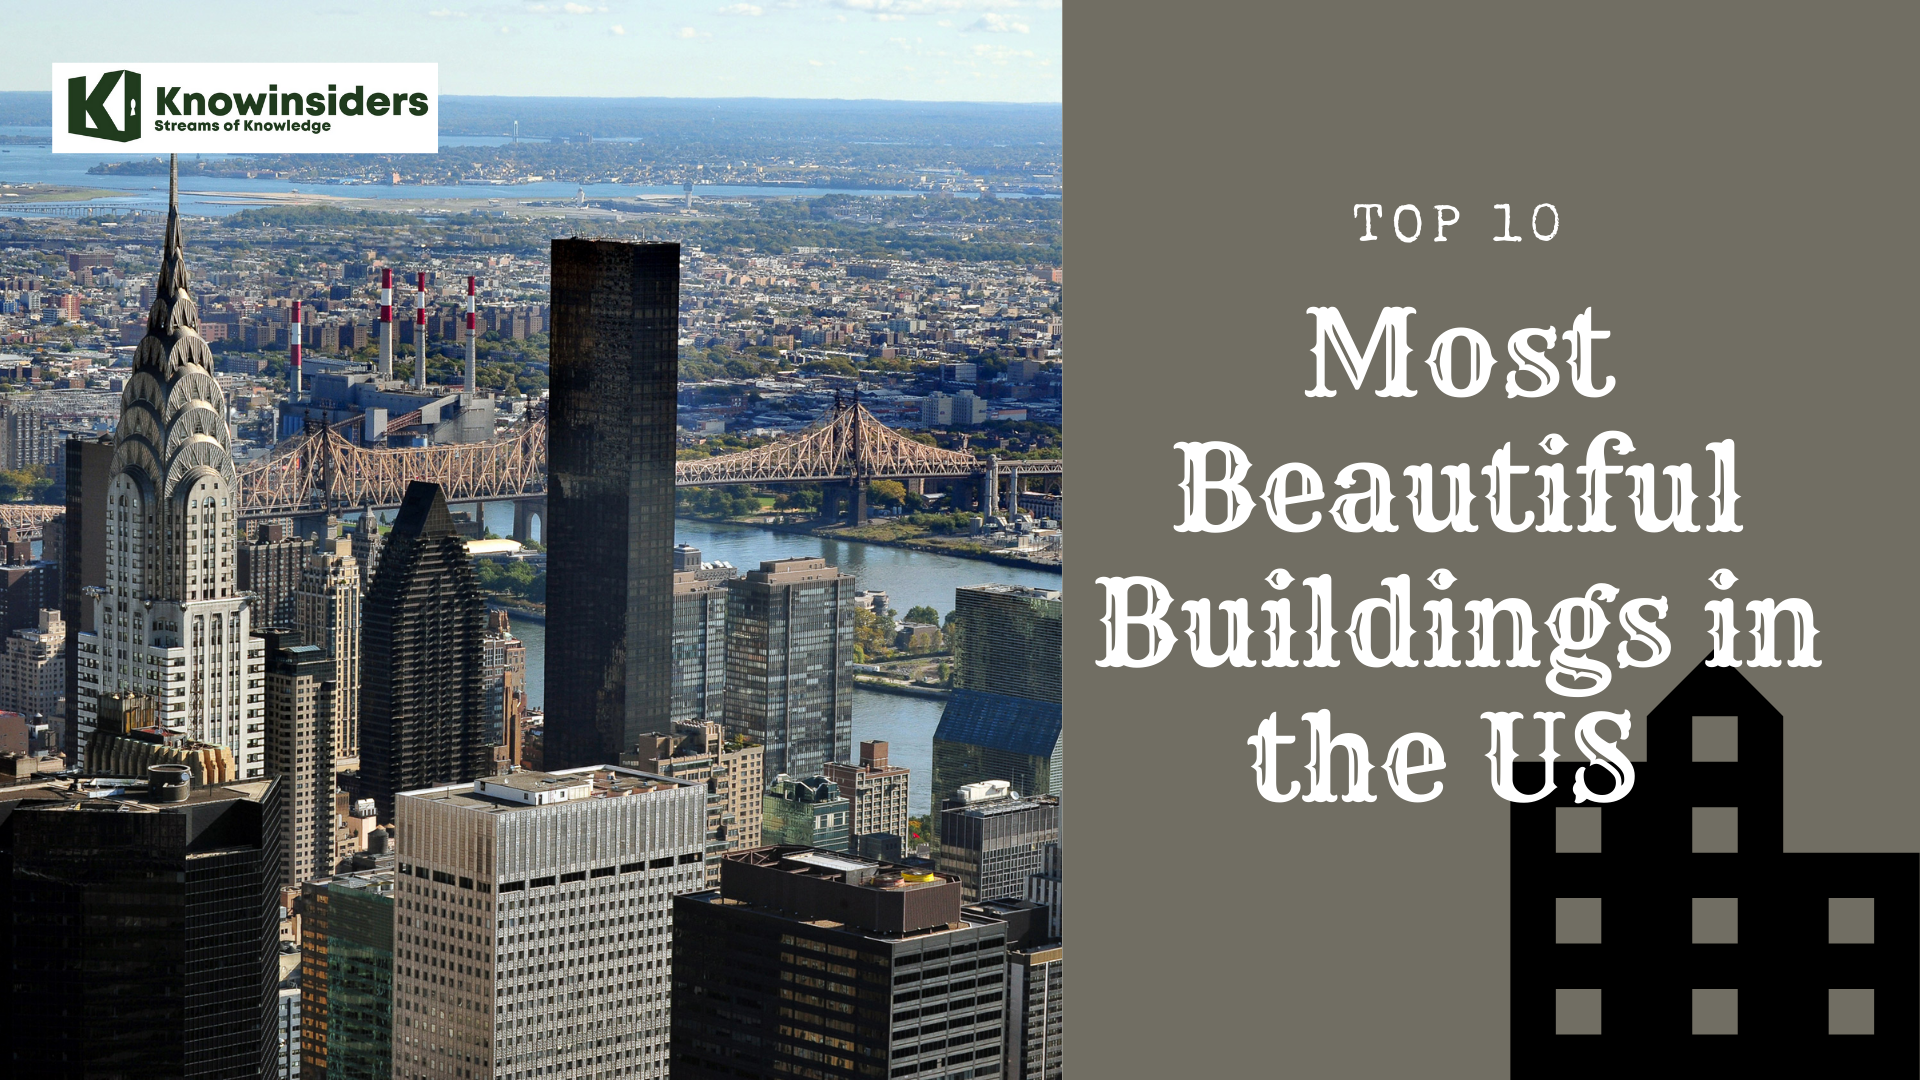 Top 10 Most Beautiful Buildings In The U.S